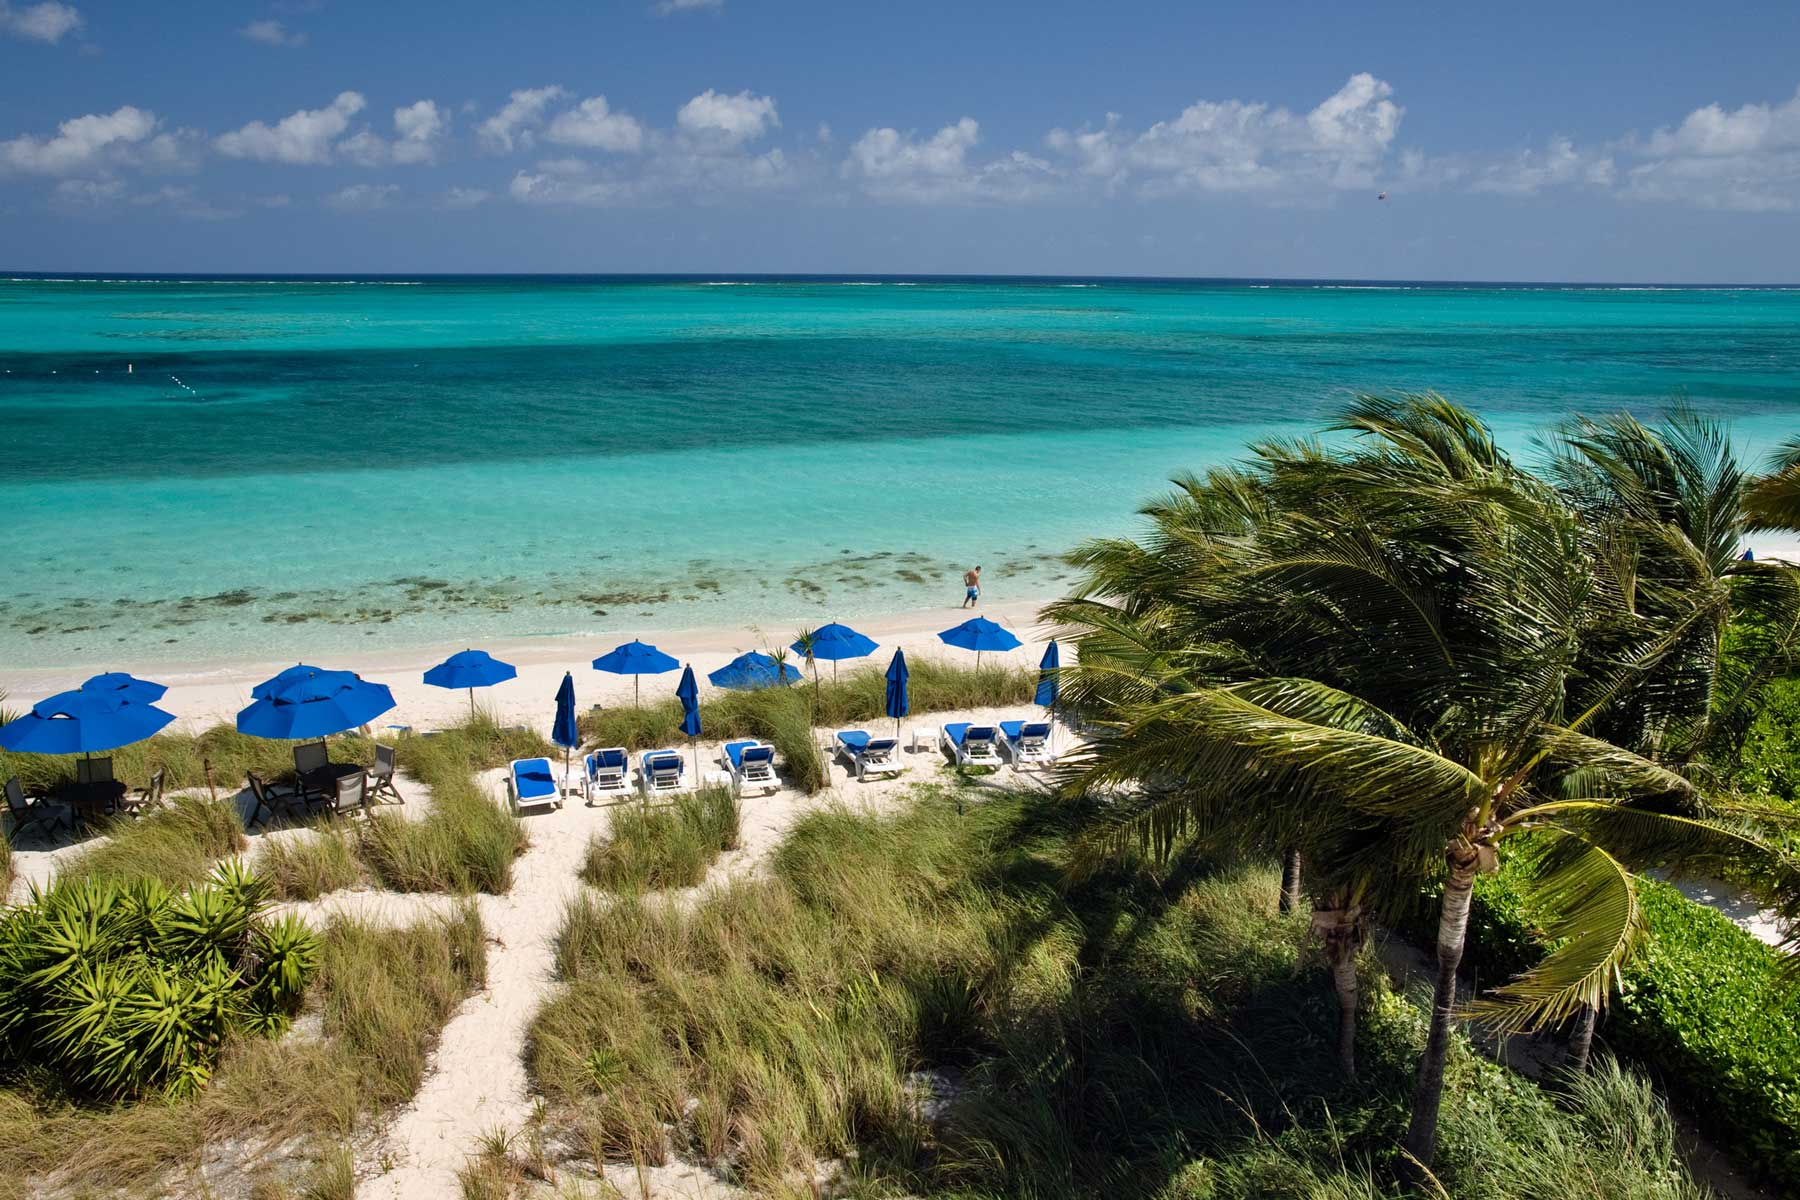 View of Beachfront on Grace Bay in Providenciales, Turks & Caicos